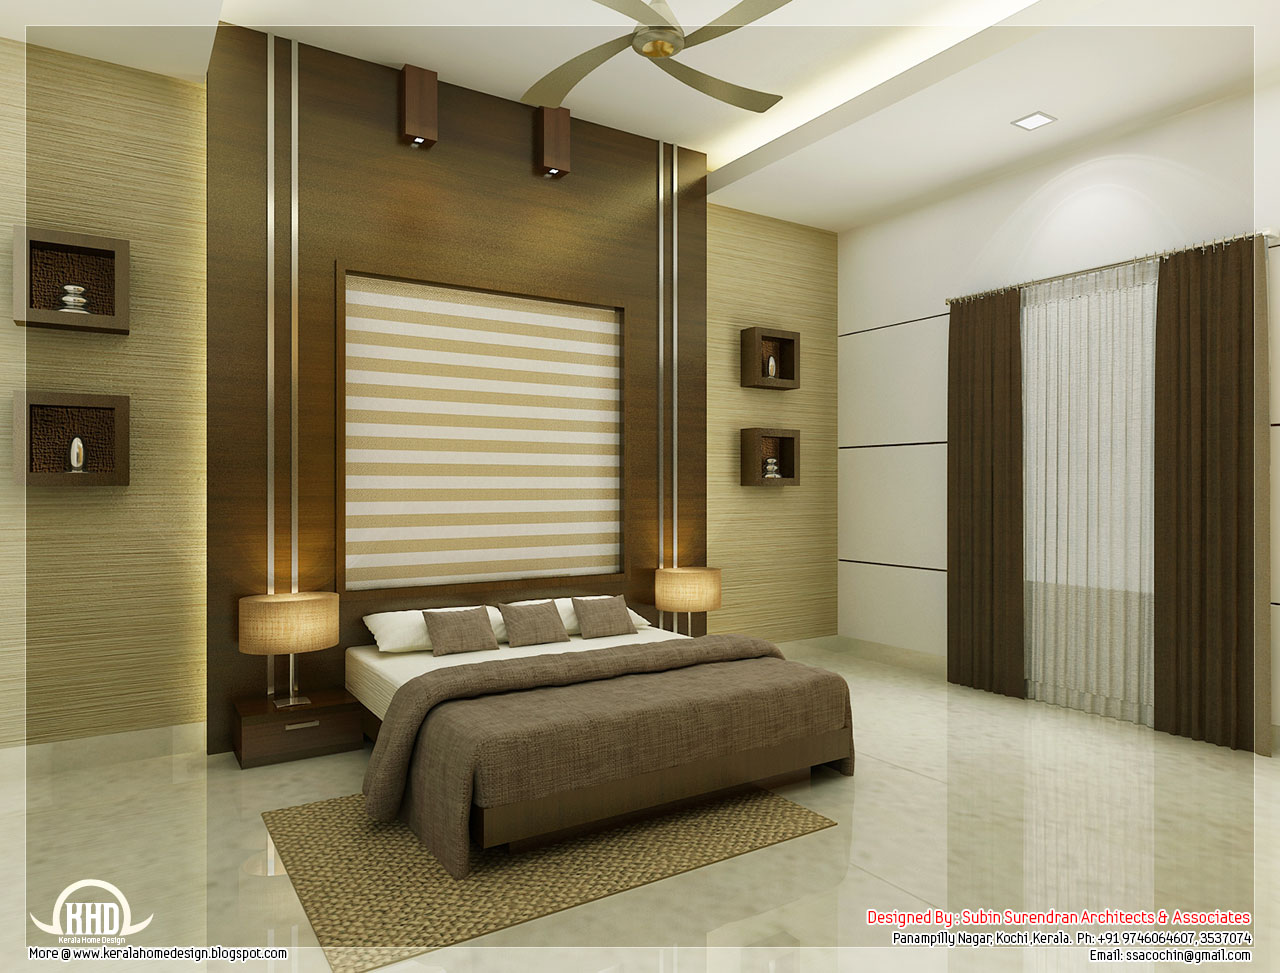 Beautiful bedroom interior designs kerala home design for Interior design images bedroom